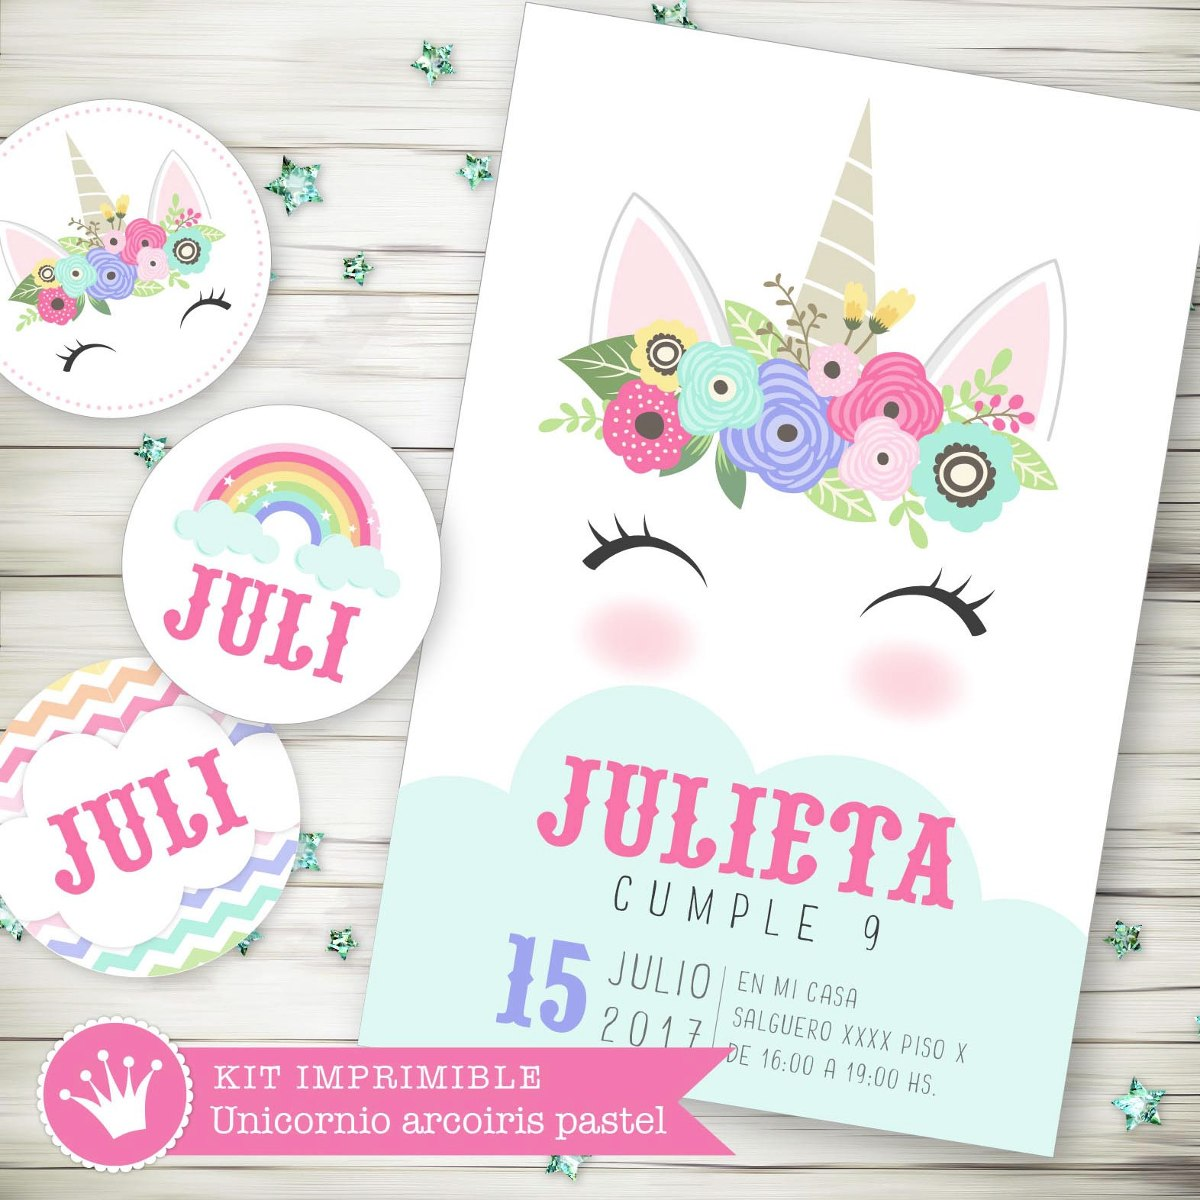 Kit Imprimible Unicornio Arcoiris Pastel Candy Invitación 3 - $ 345 ...